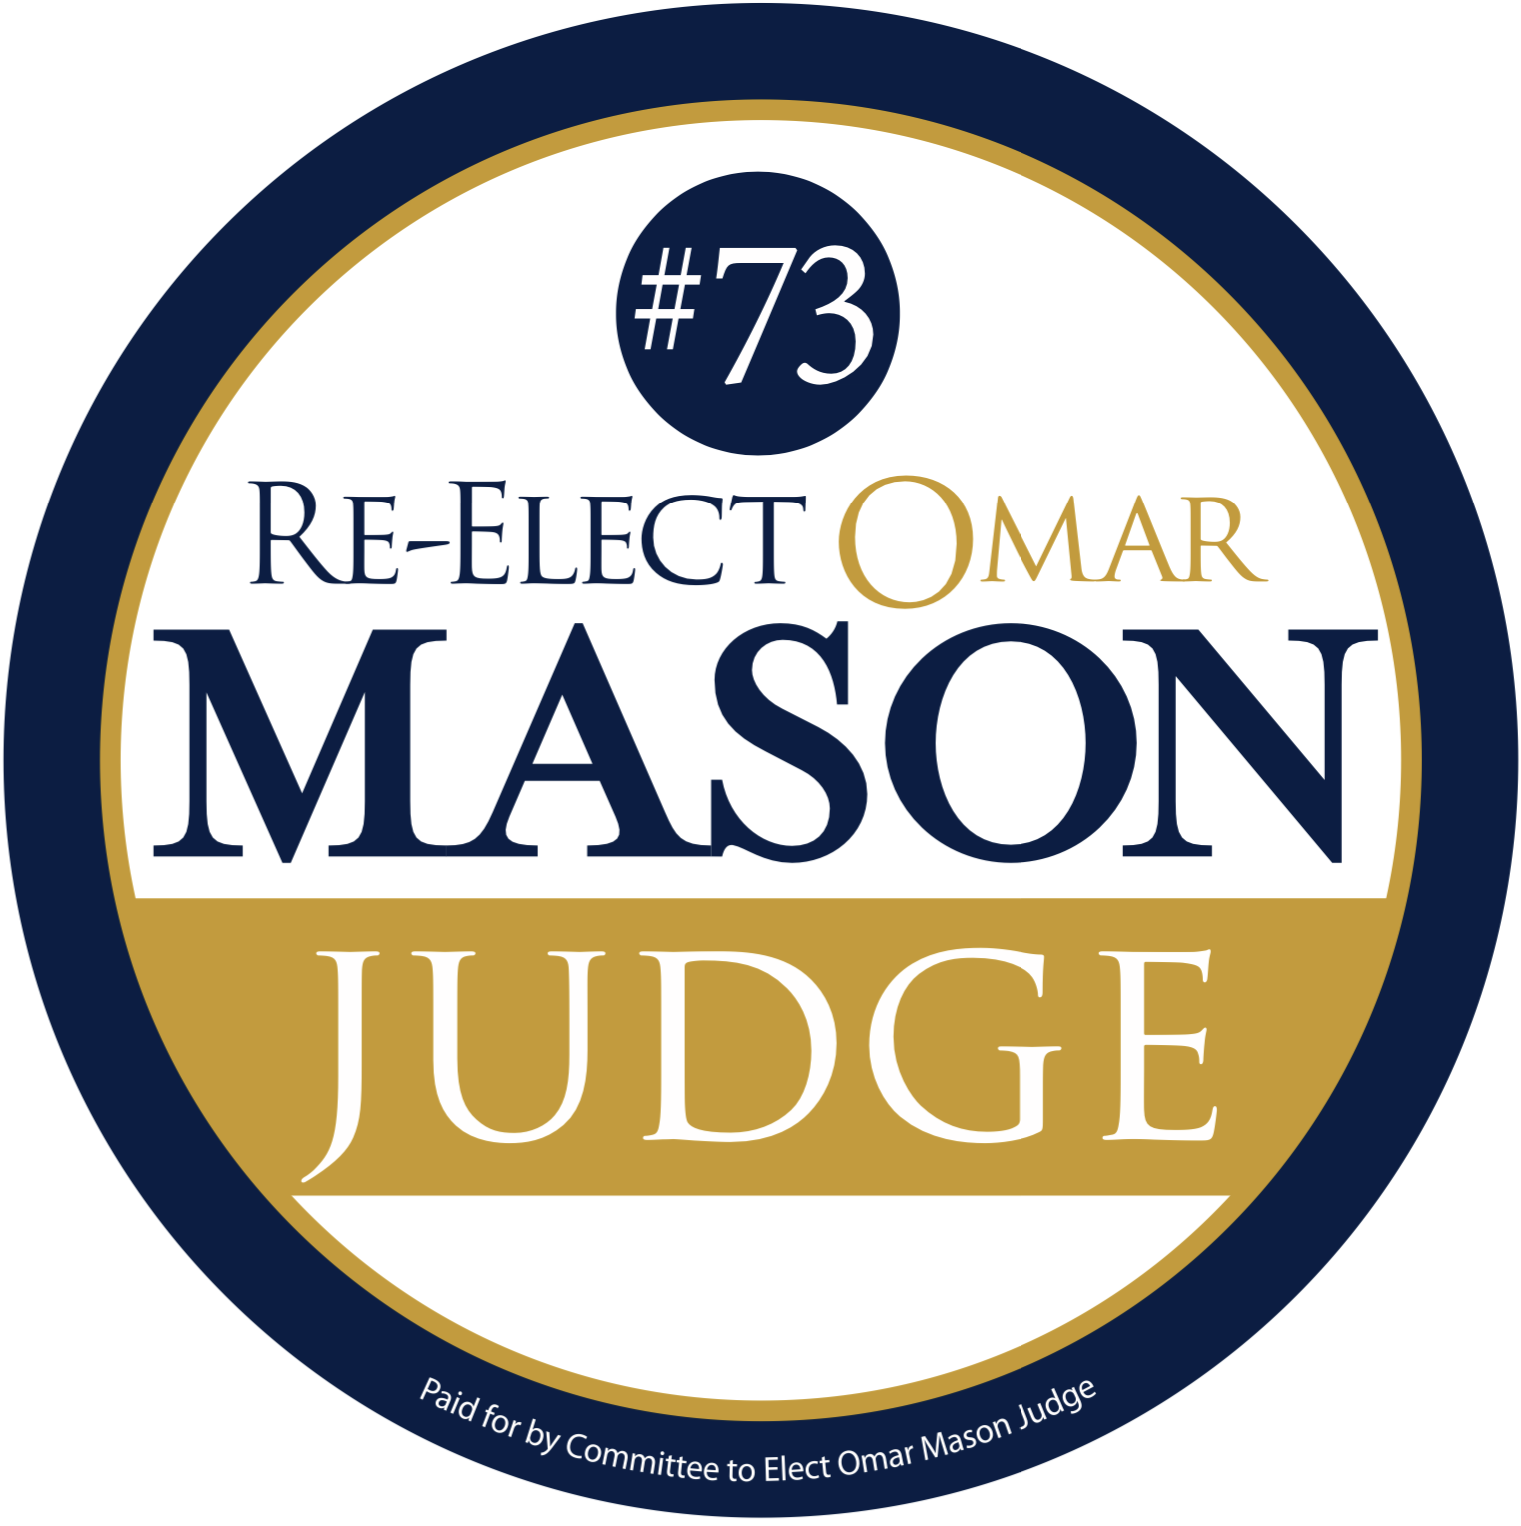 Committee to Elect Omar Mason - Judge: Donate Today!